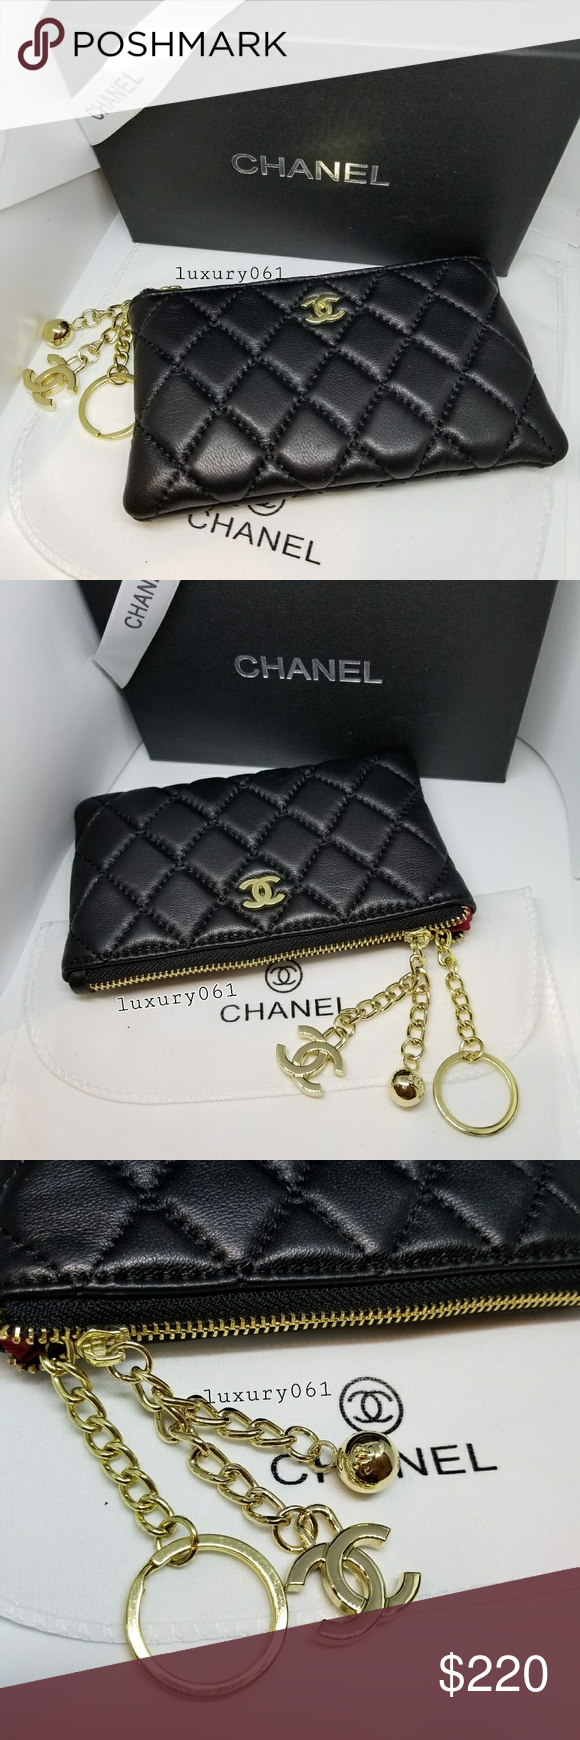 5c033d4c2a240c Chanel VIP gift coins purse. Authentic brand new Chanel VIP gift lamb black  leather with